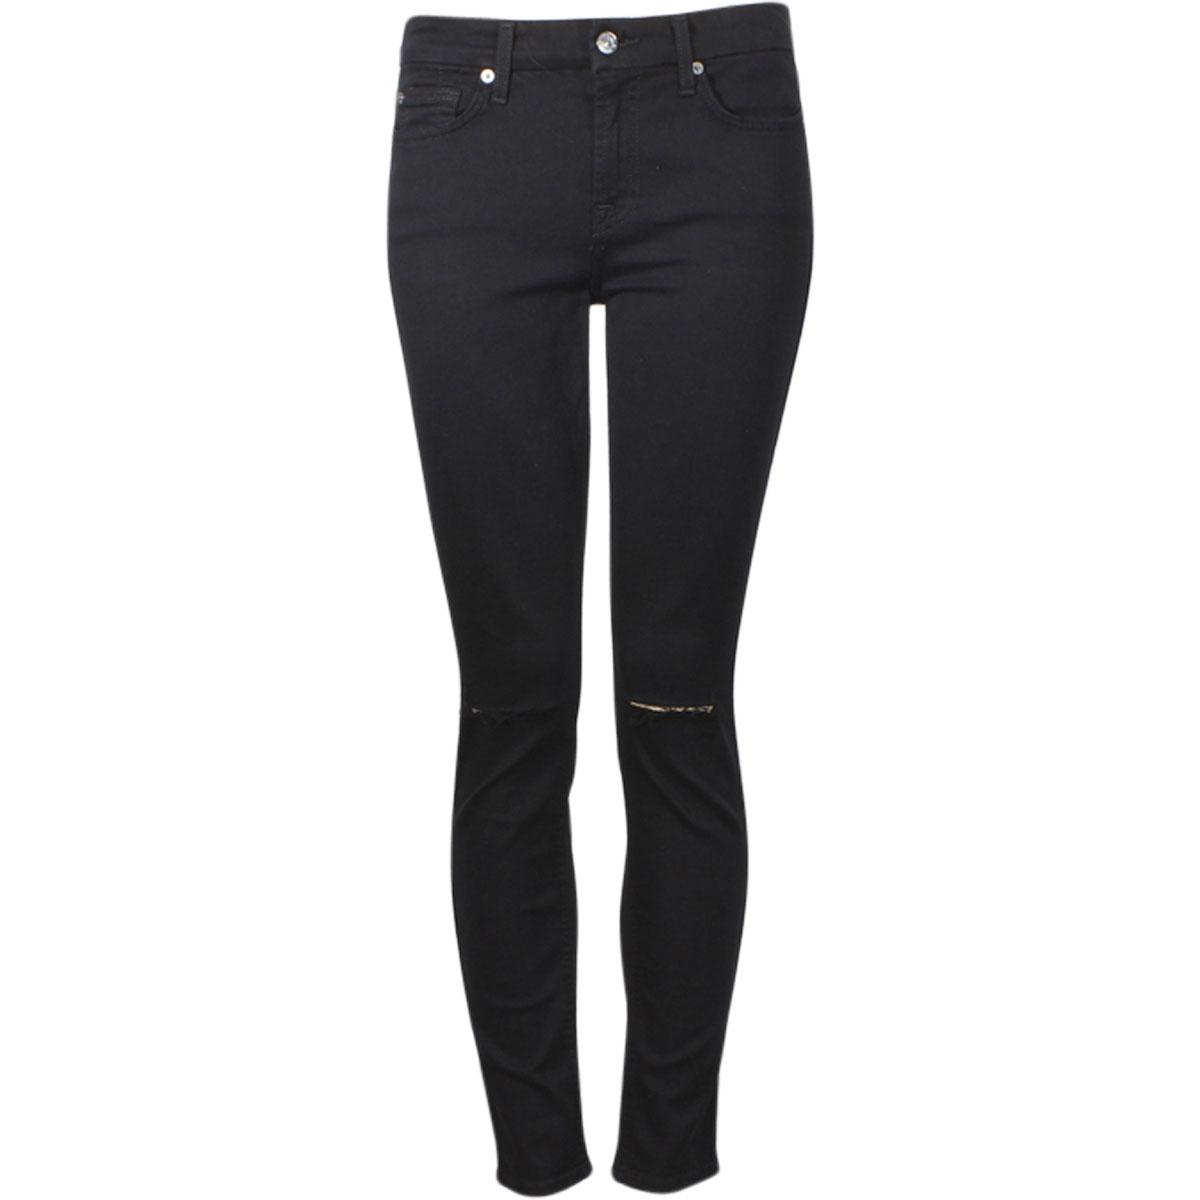 Image of 7 For All Mankind Women's (B)Air Denim Ankle Skinny With Destroy Cropped Jeans - Black - 28 (5/6)